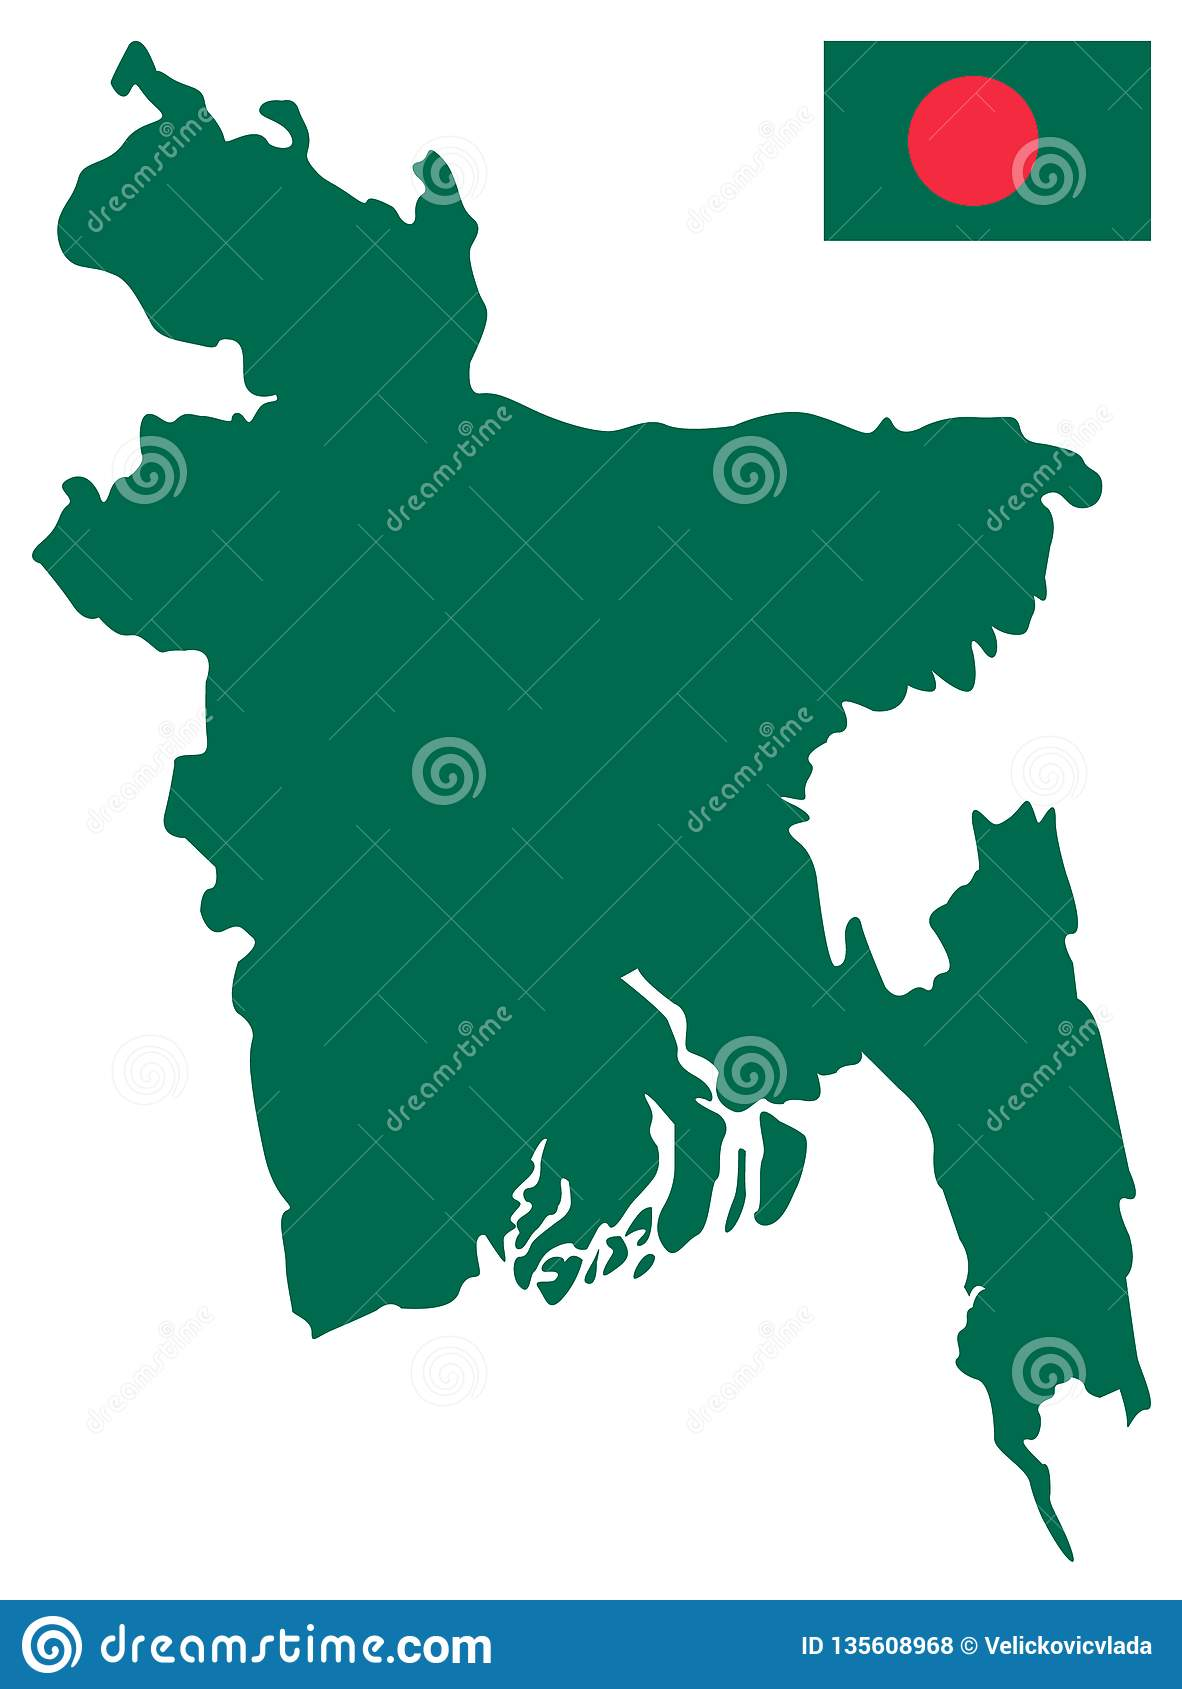 Bangladesh On Map Of Asia.Bangladesh Flag And Map Republic Of Bangladesh Is A Country In